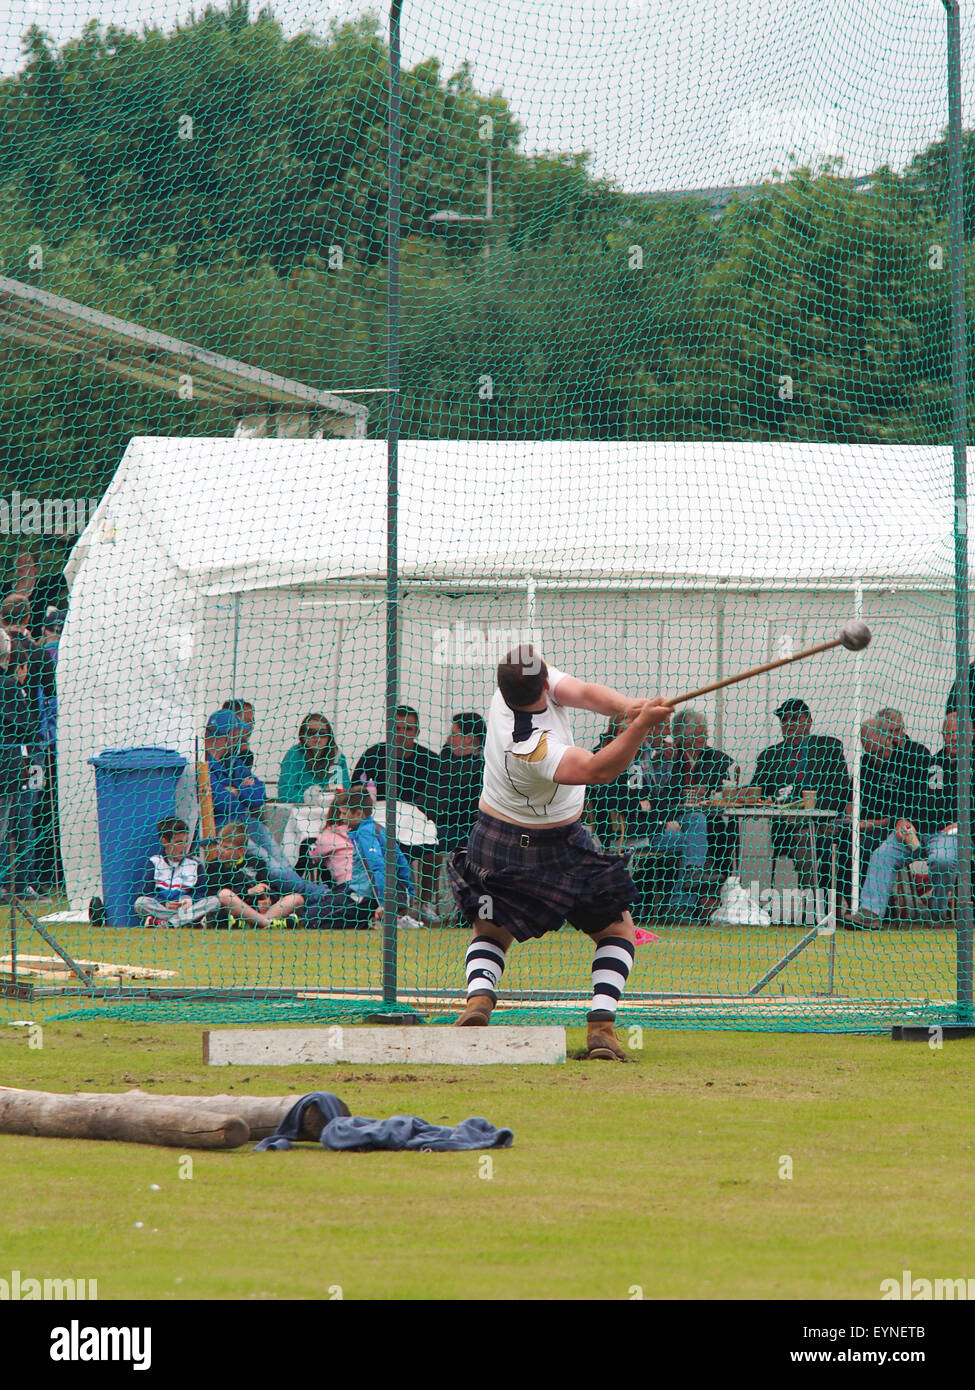 St. Andrews, Scotland - July 26th 2015: A competitor performing in the Hammer Throw competition at the Highland - Stock Image